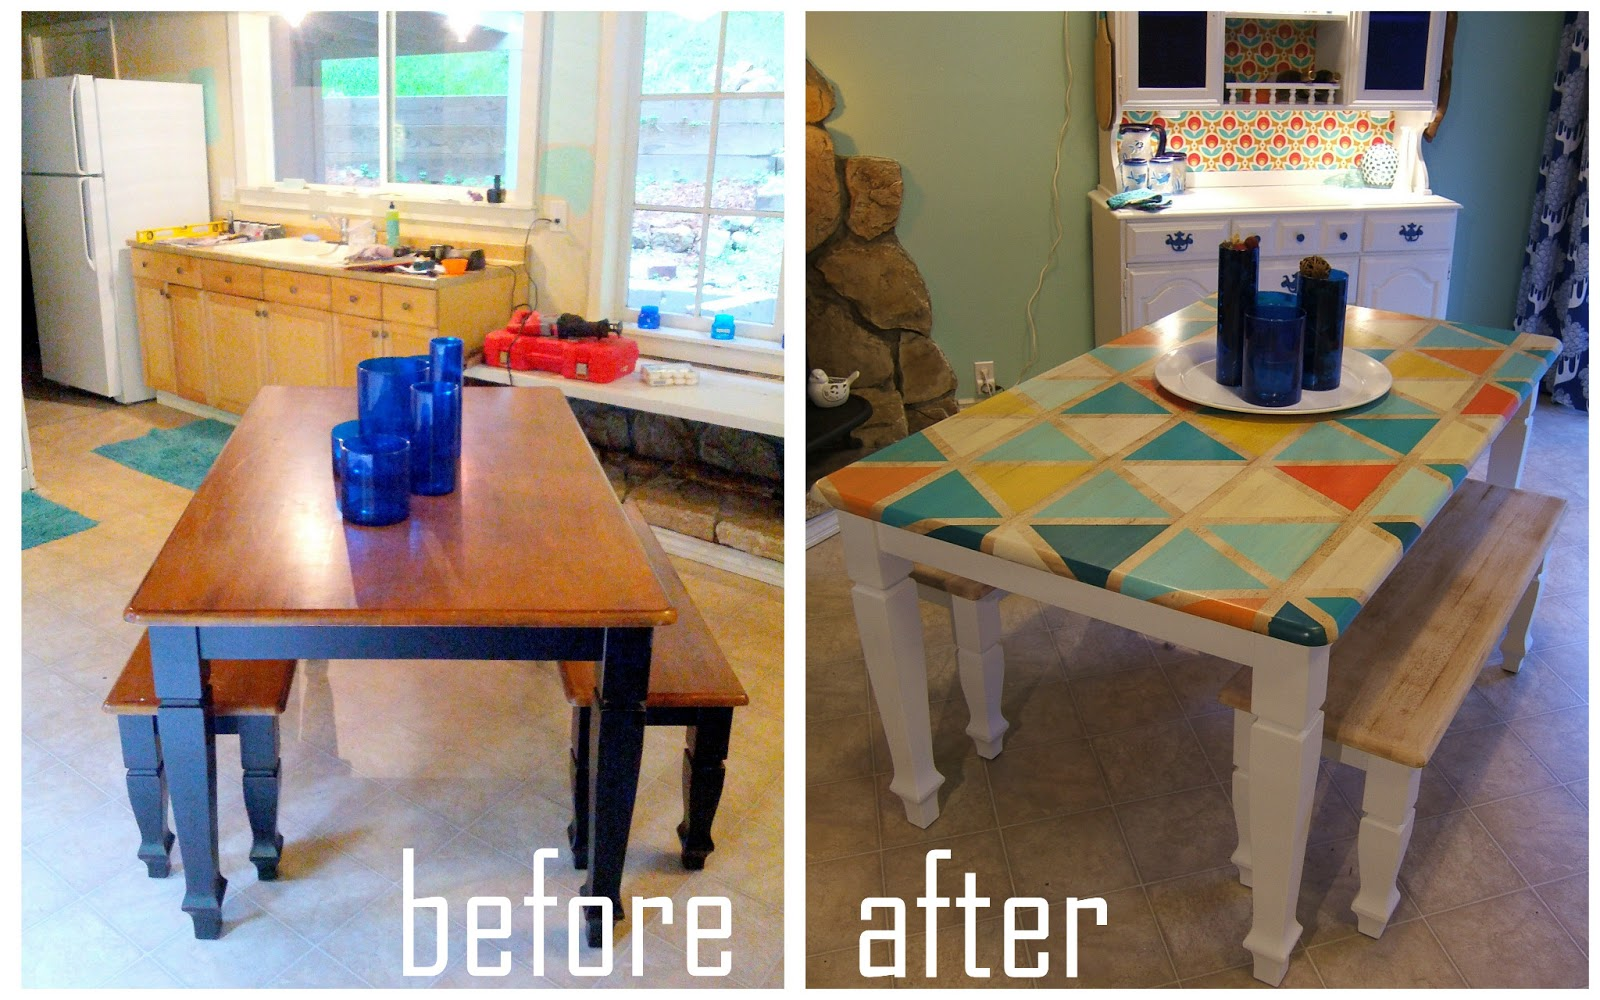 Yar enter pirate accent a satisfying before after for Painted kitchen table ideas